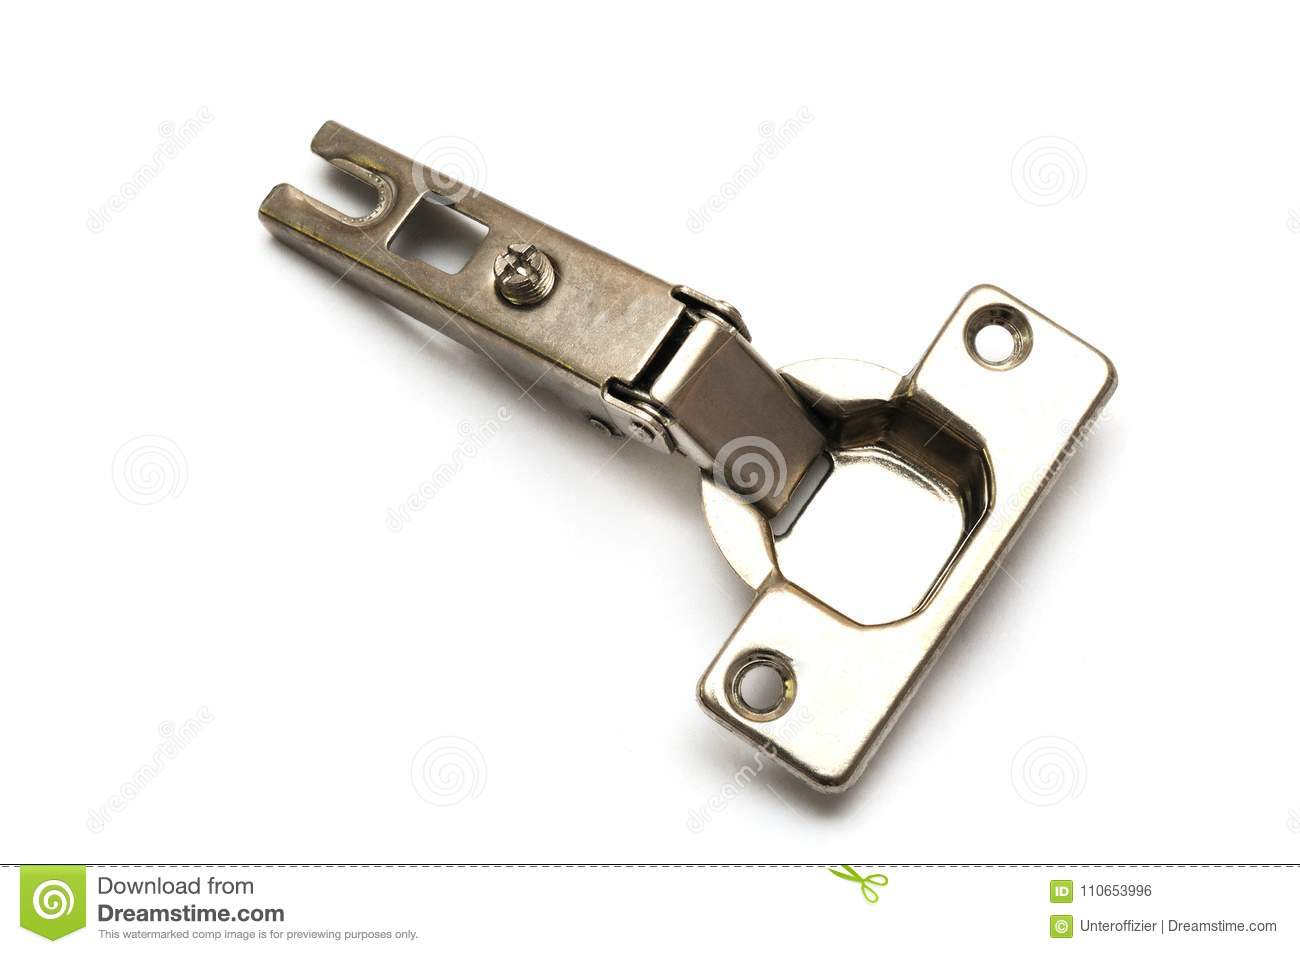 A stainless steel silver kitchen cabinet door hinge